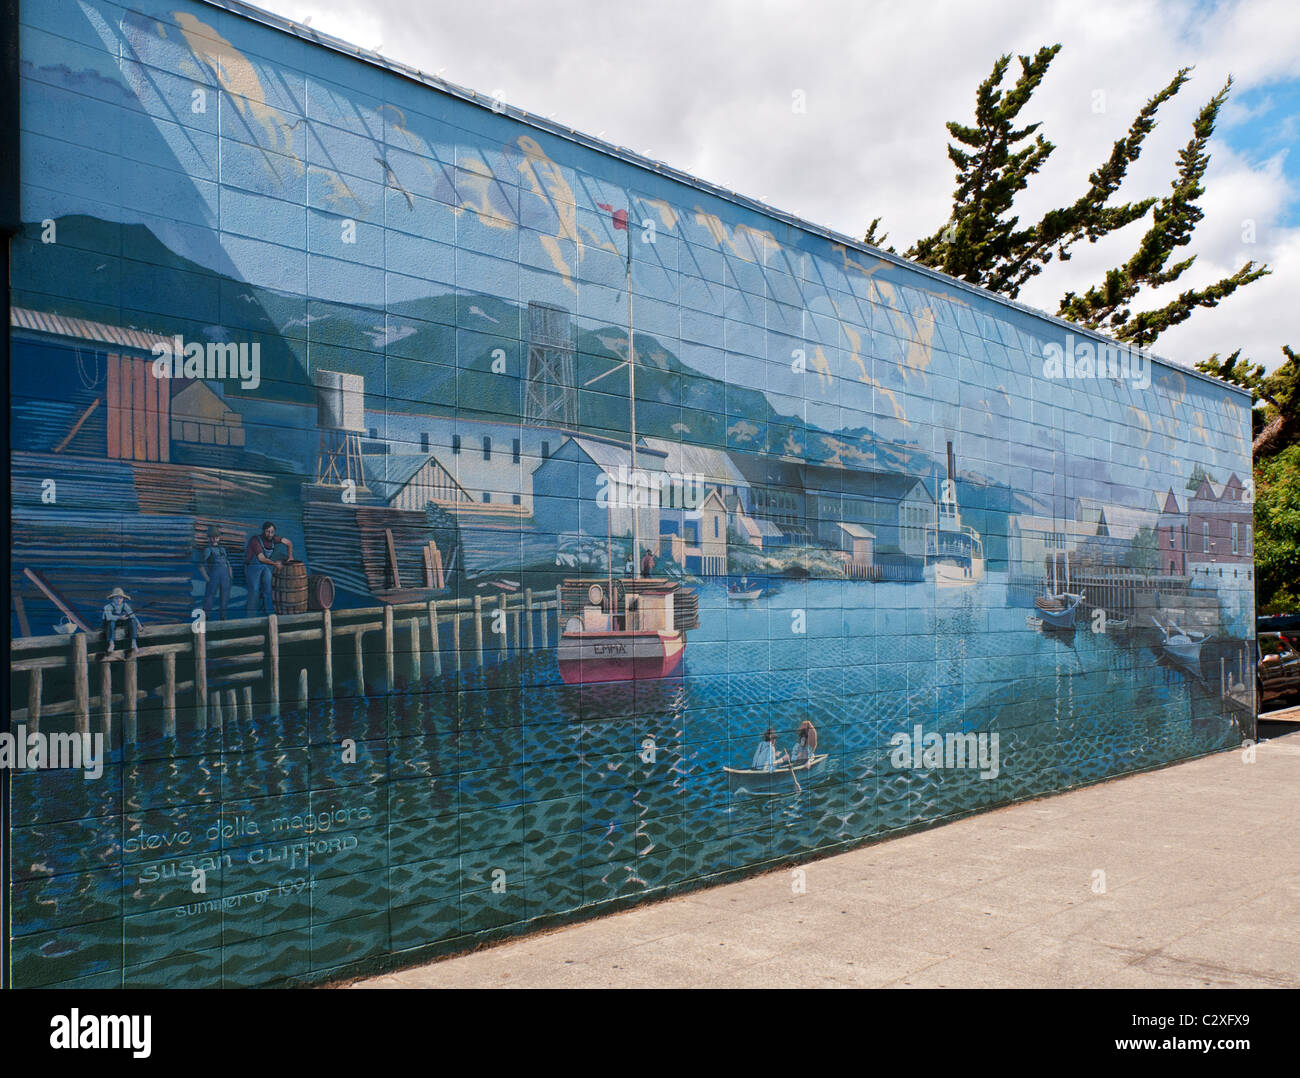 California napa downtown mural project mural 1 the for California mural